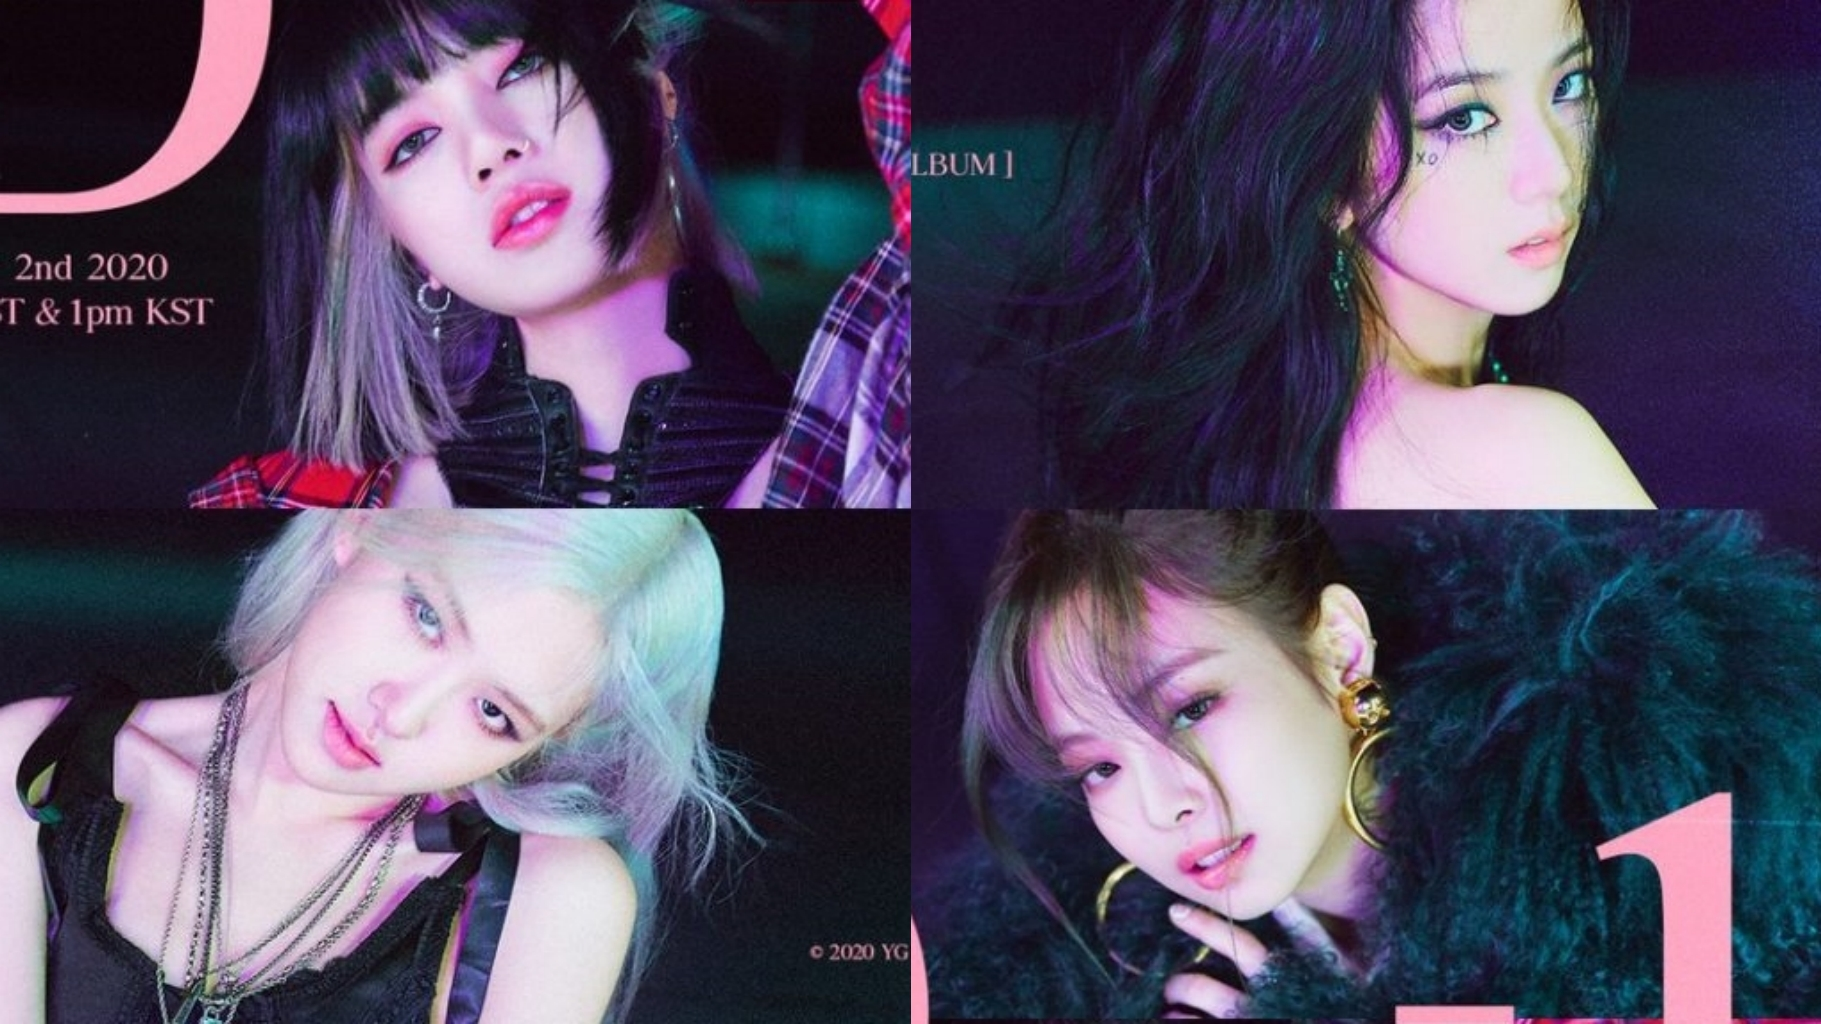 BLACKPINK Reveals D-1 Poster Before Comeback With 'THE ALBUM'